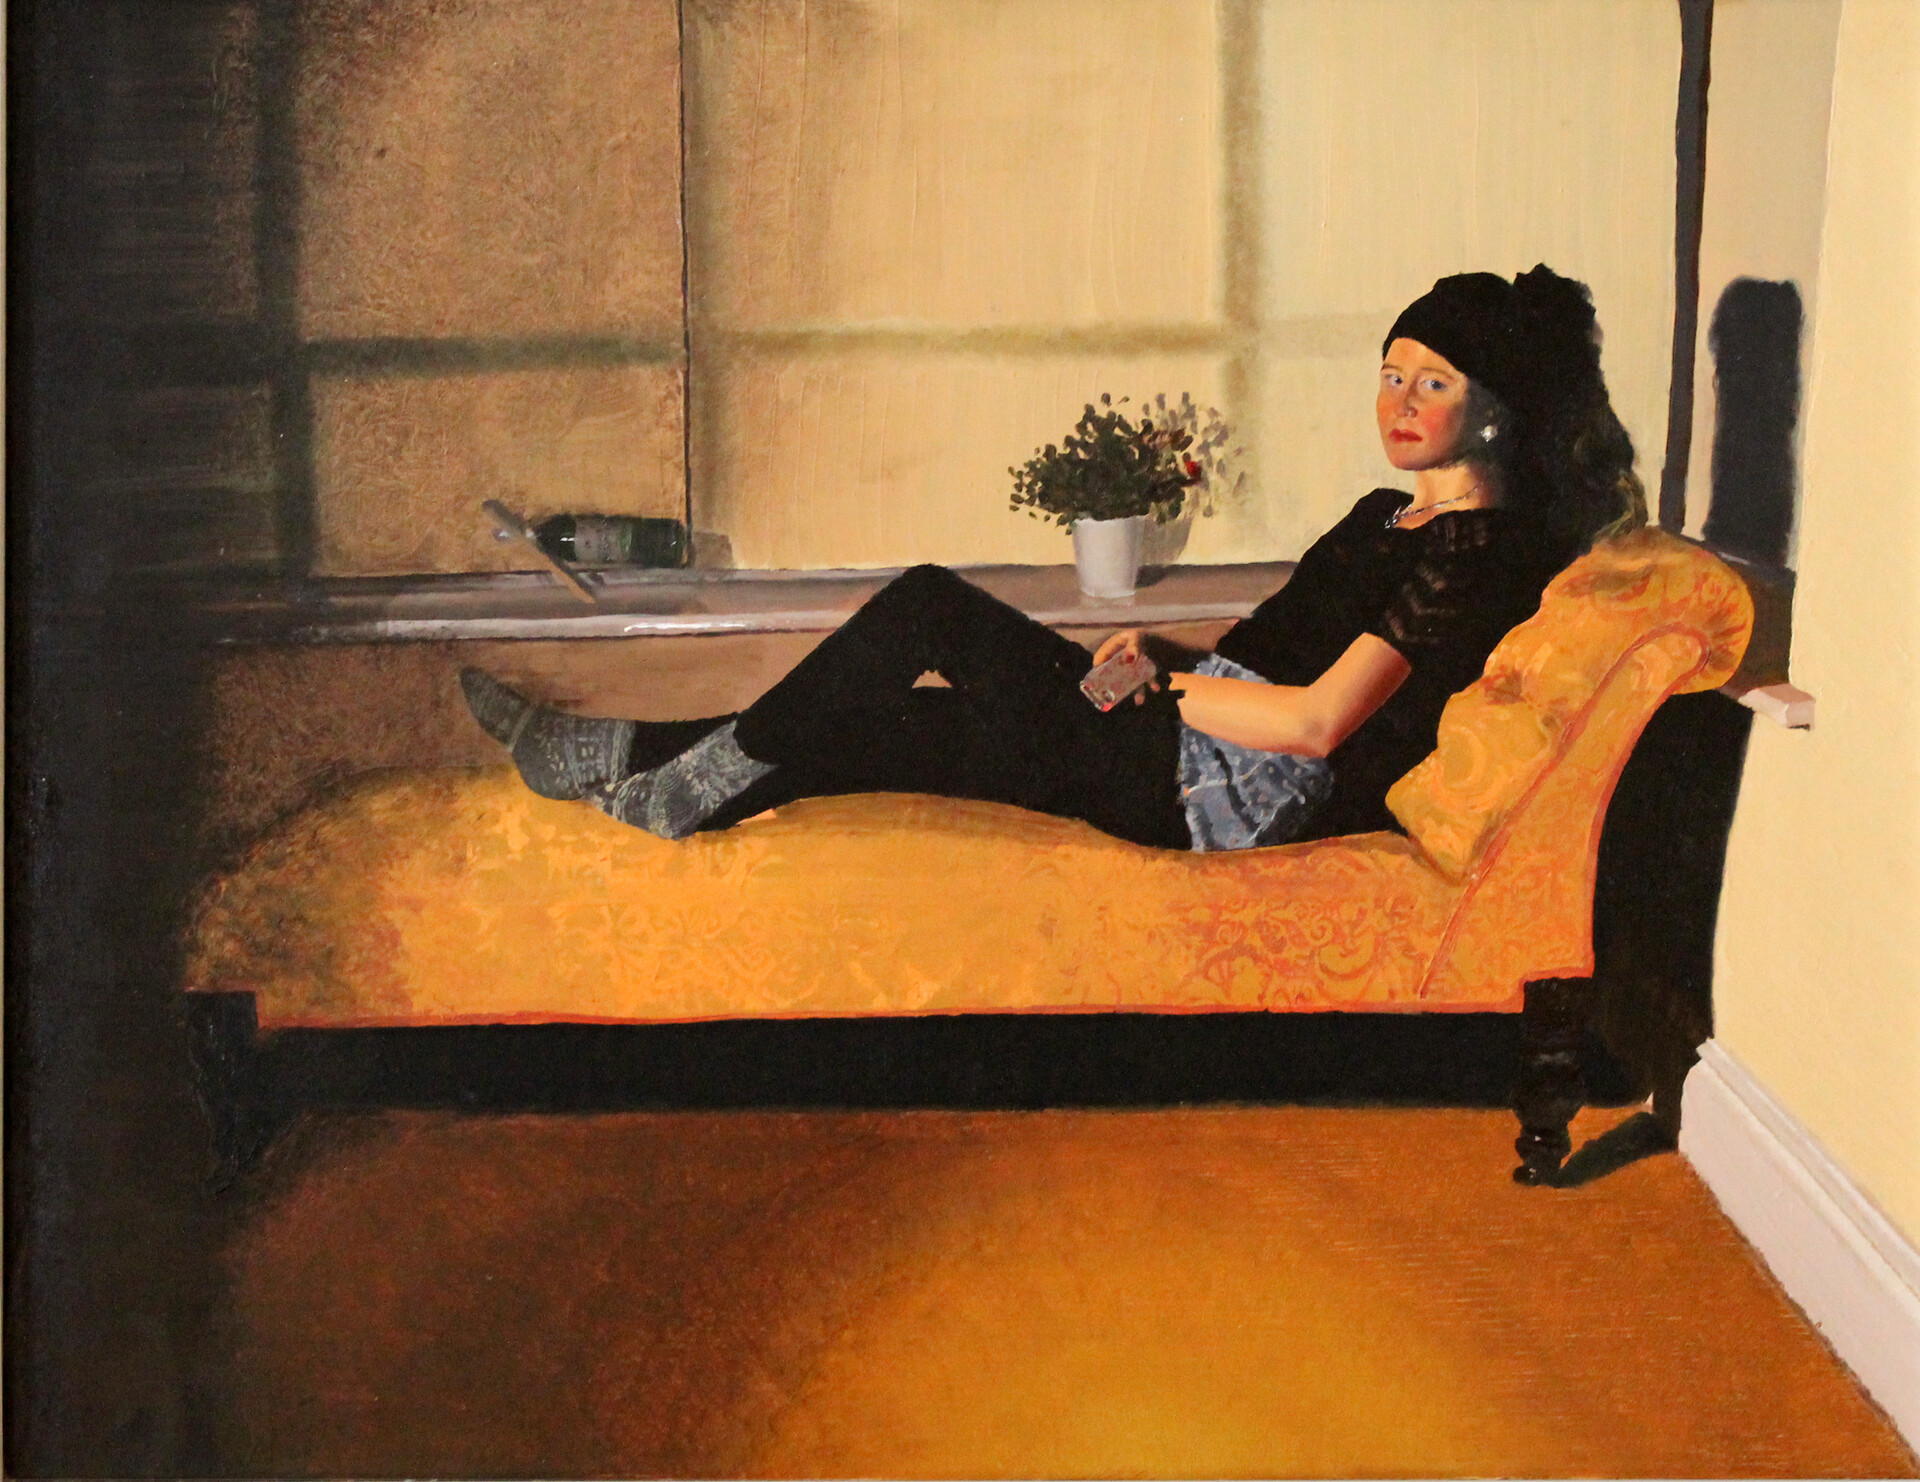 Girl On Chaise Lounge, 2014. Oil on Board.